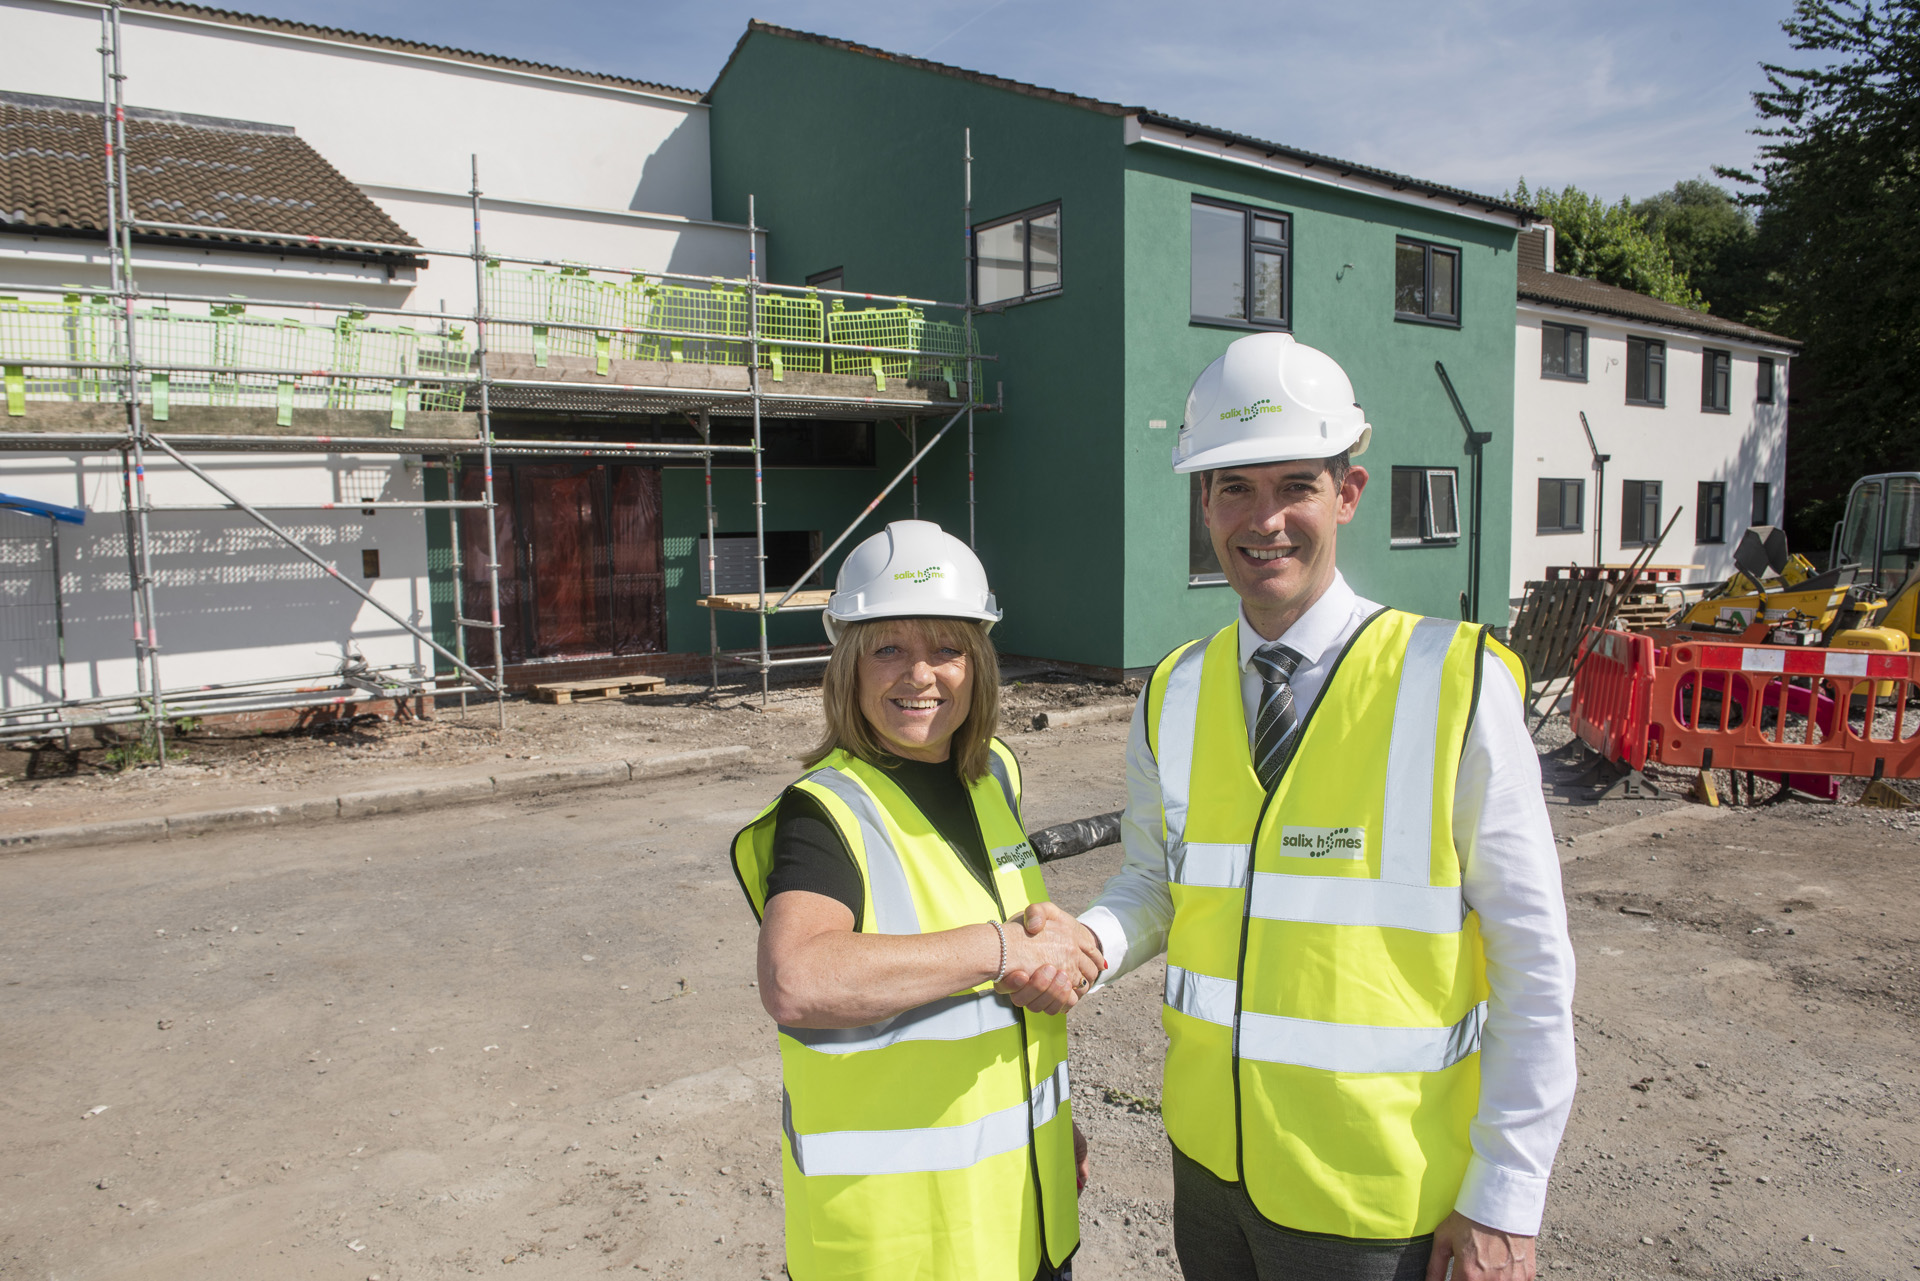 New homes for doctors and nurses to help plug acute staff shortage